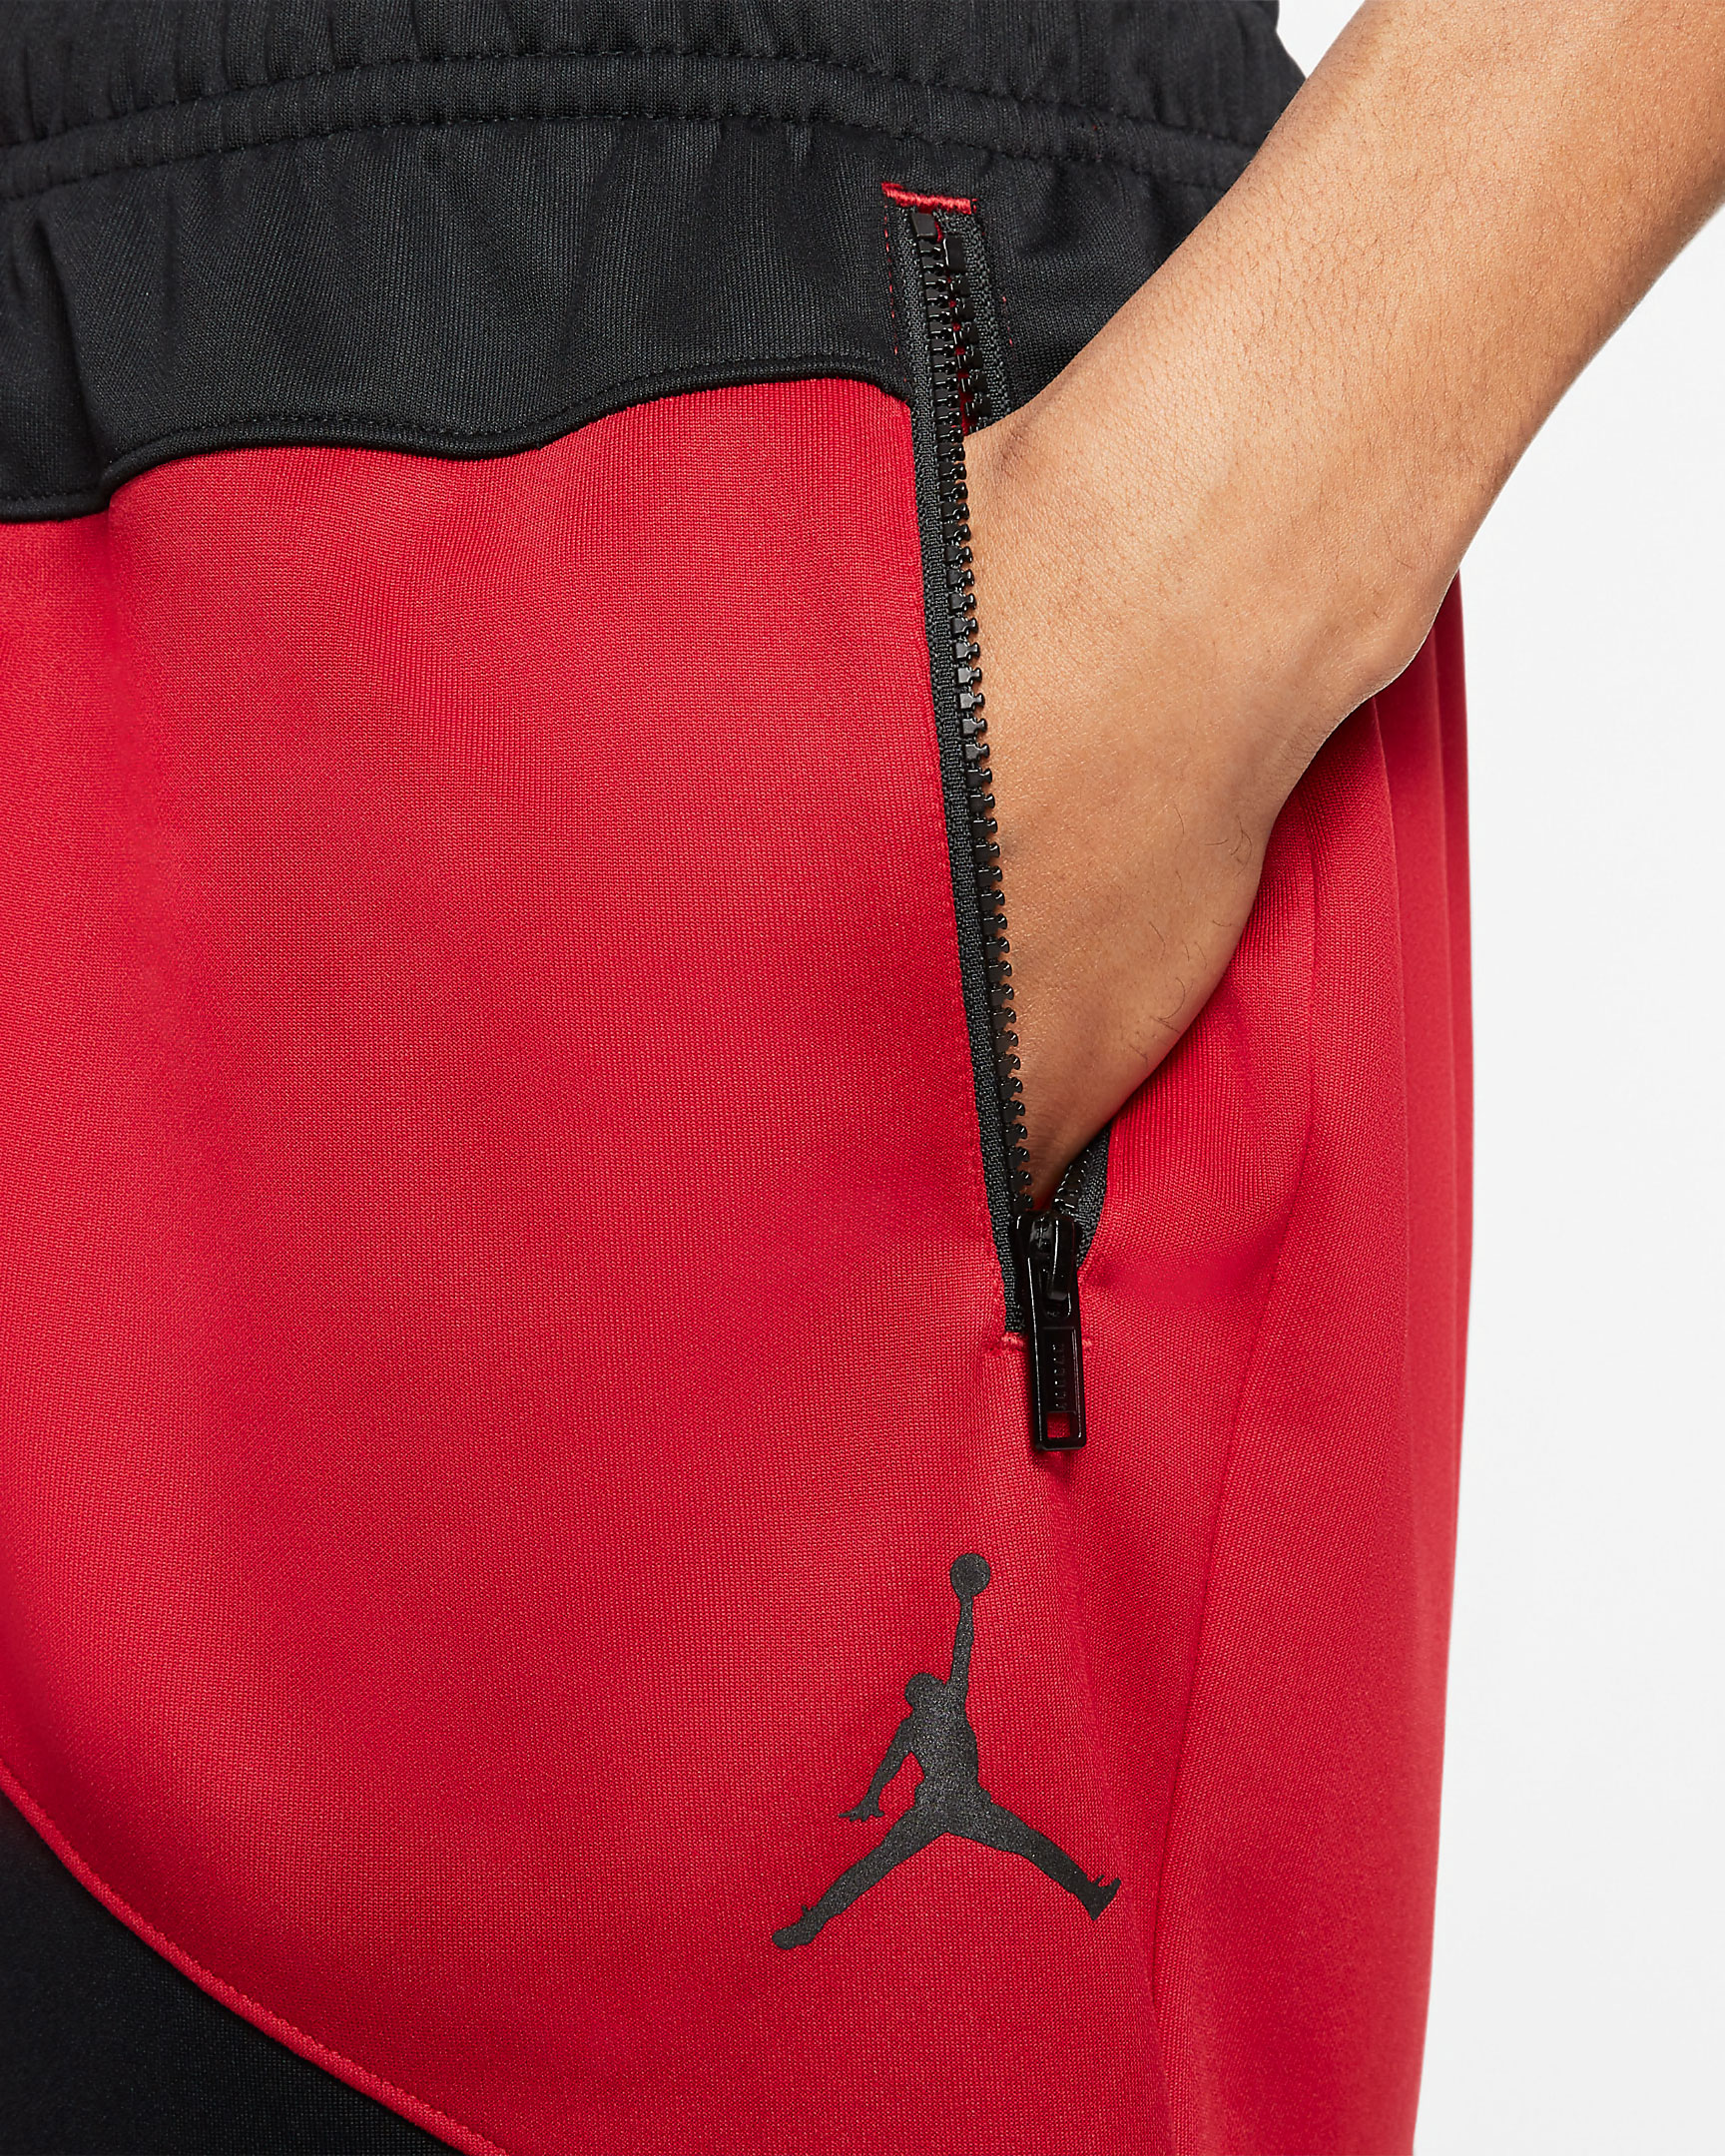 jordan-jumpman-wave-shorts-red-black-white-3